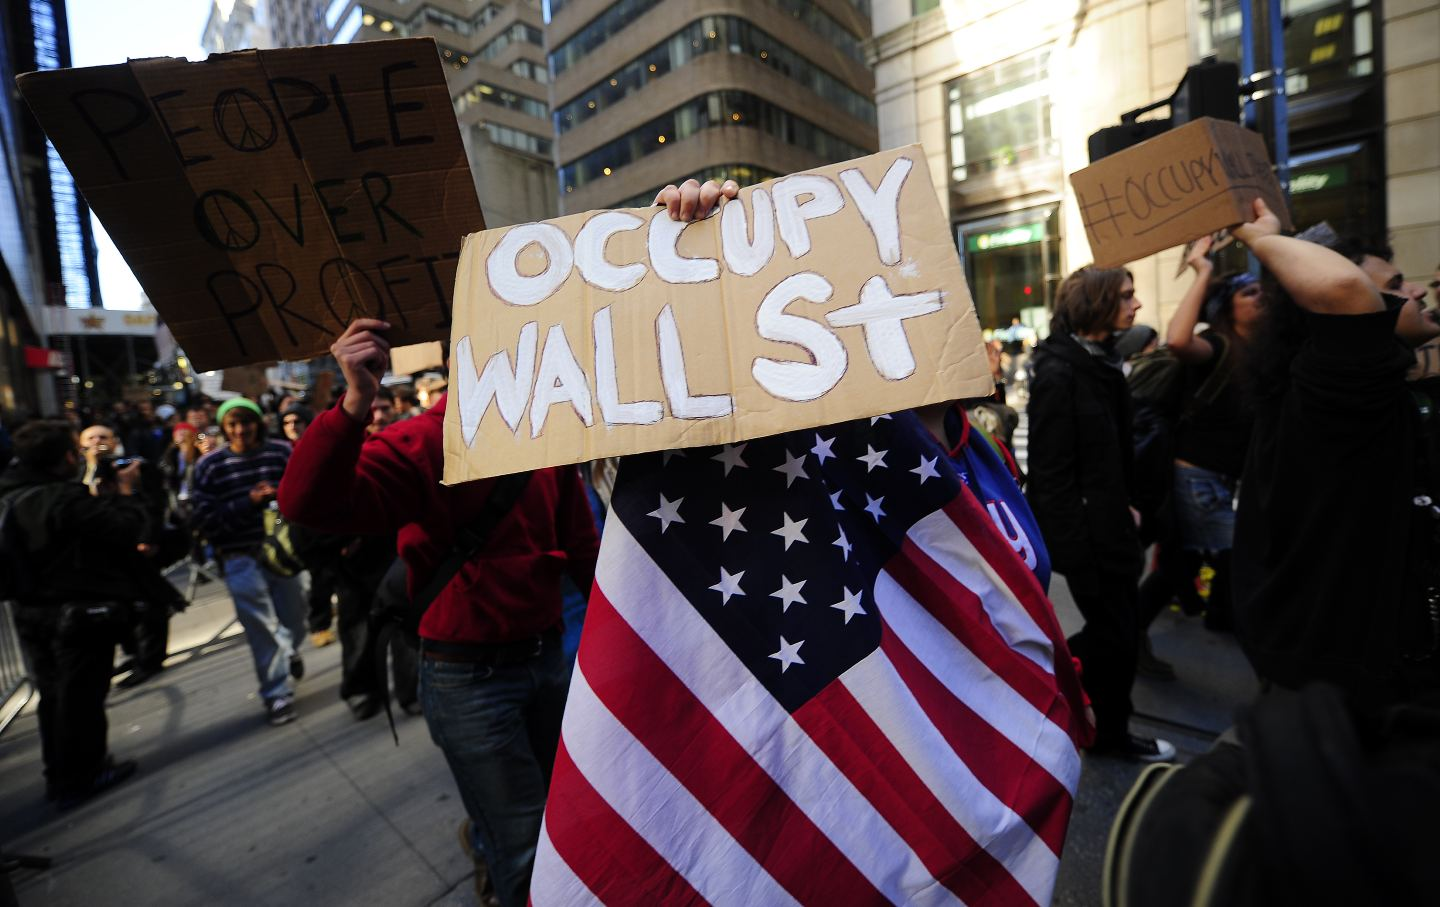 Was Occupy Wall Street More Anarchist or Socialist?